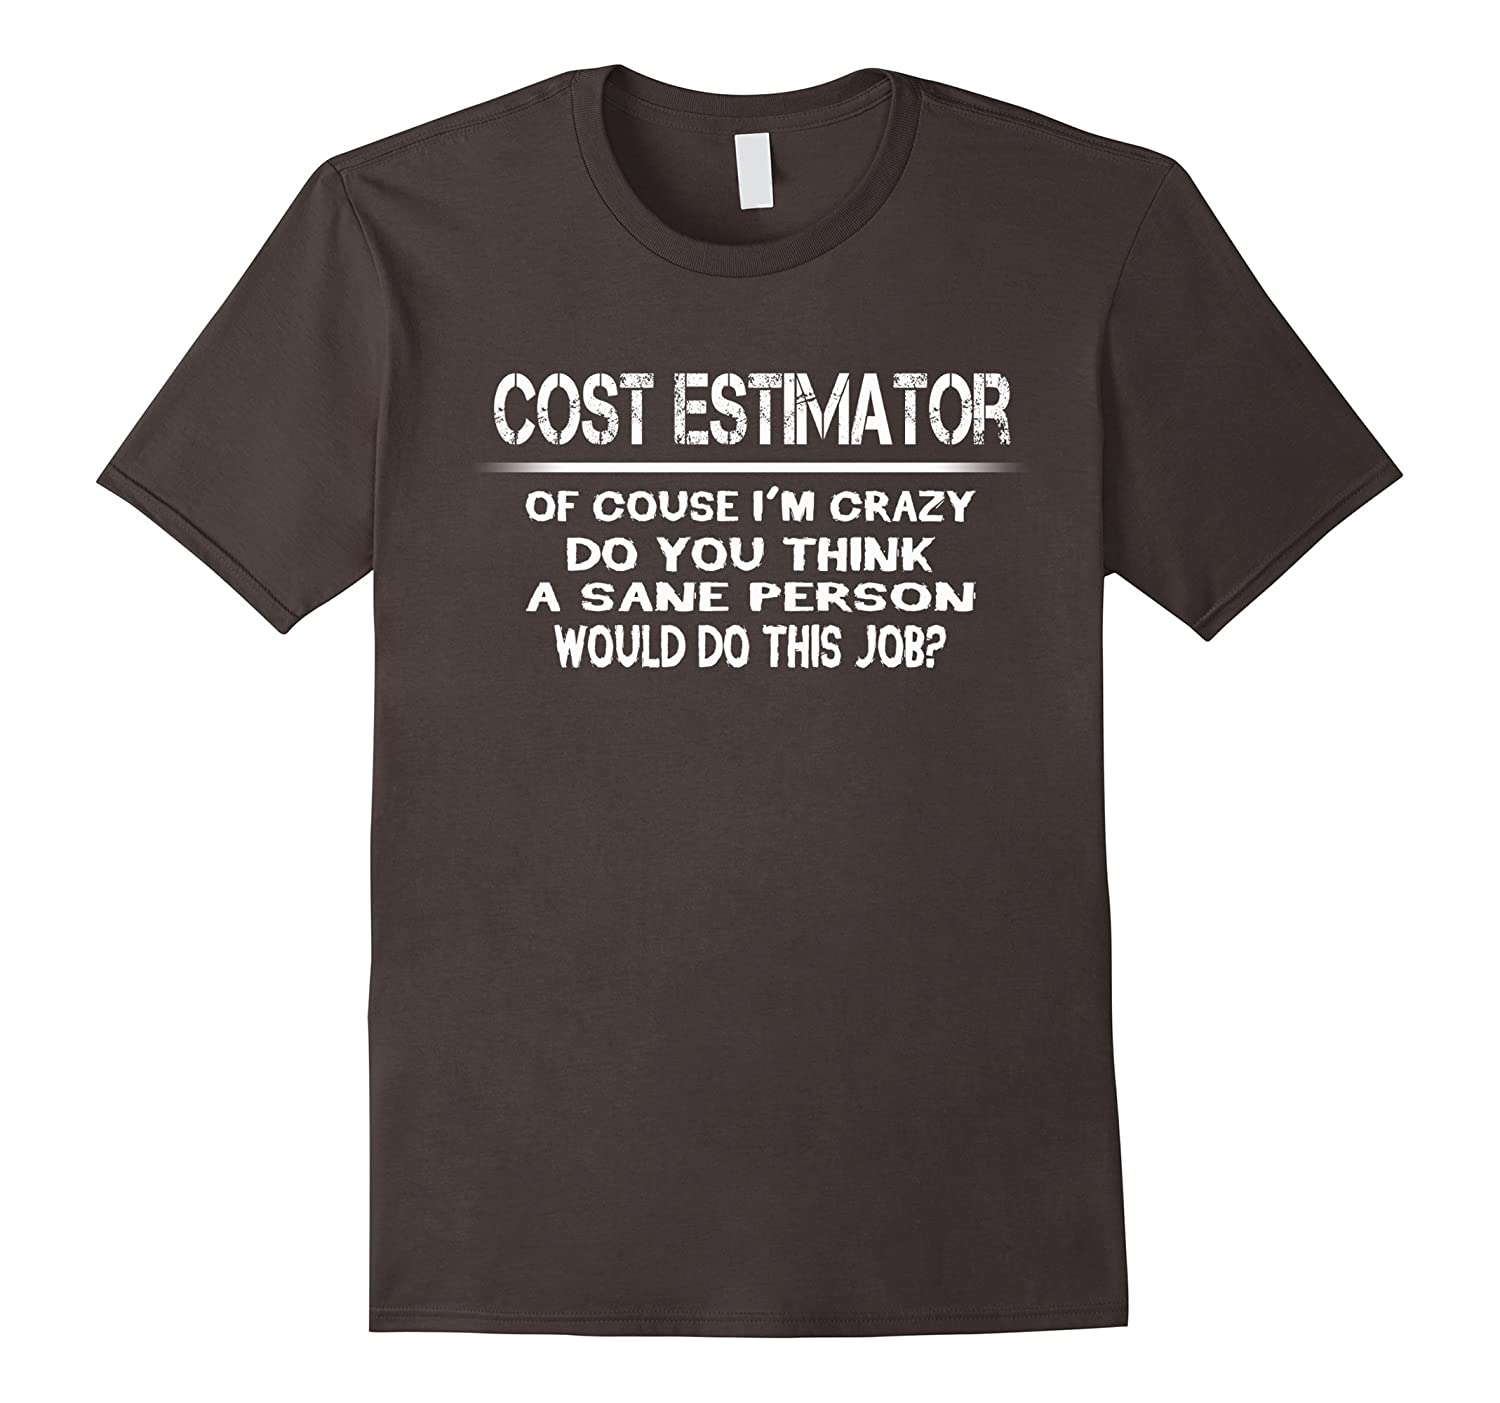 Cost Estimator im crazy the sane people would this job-TJ